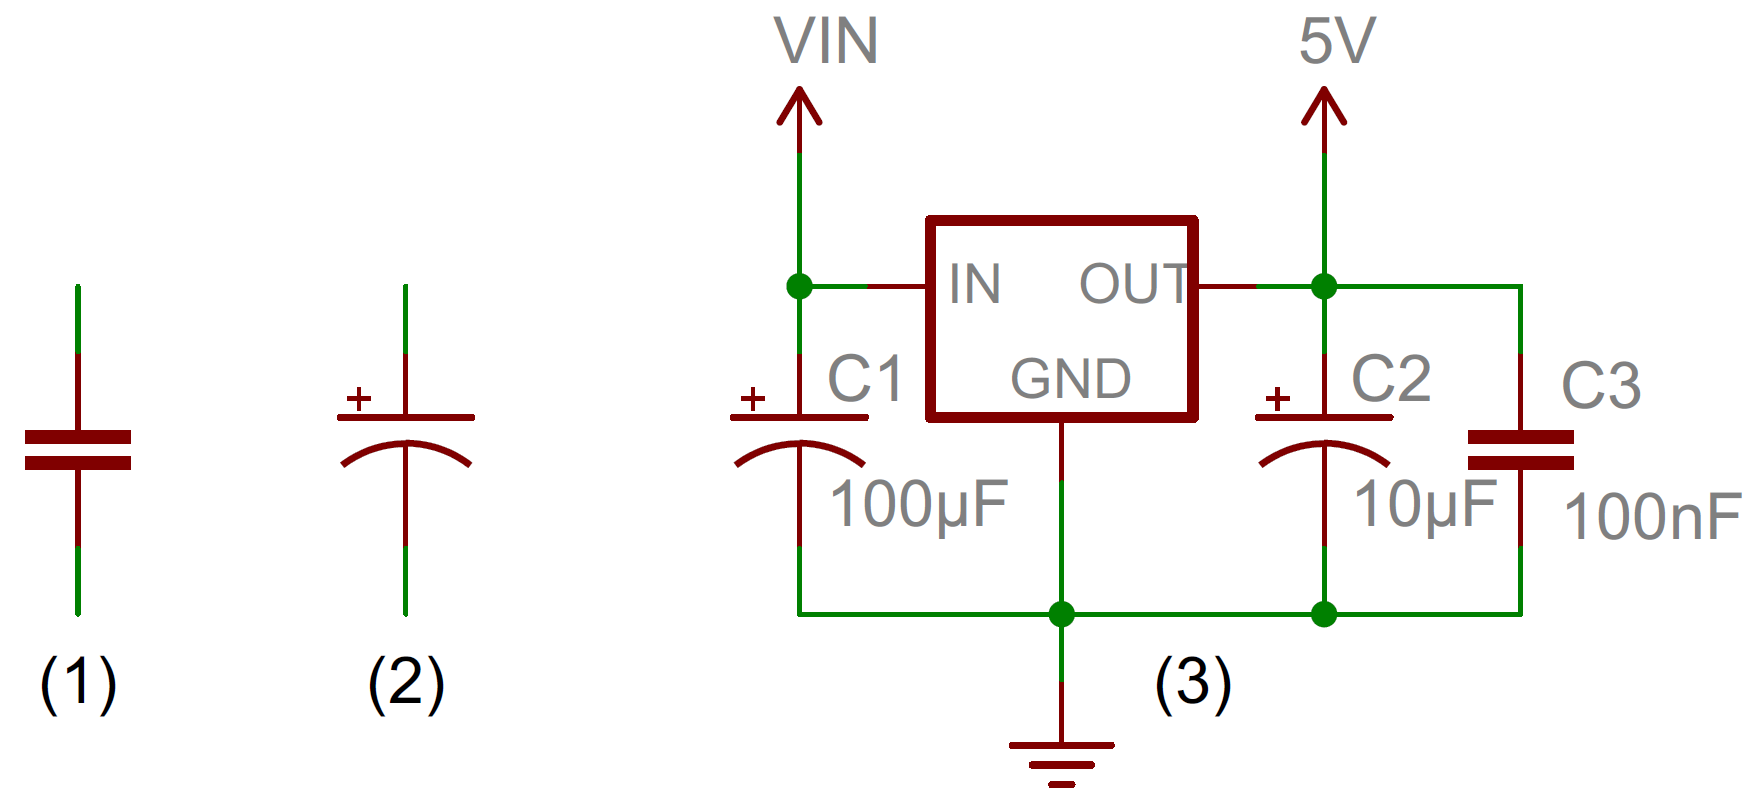 Capacitors How An Inductor Can Work In A Circuit This Figure Is Helpful Capacitor Symbols